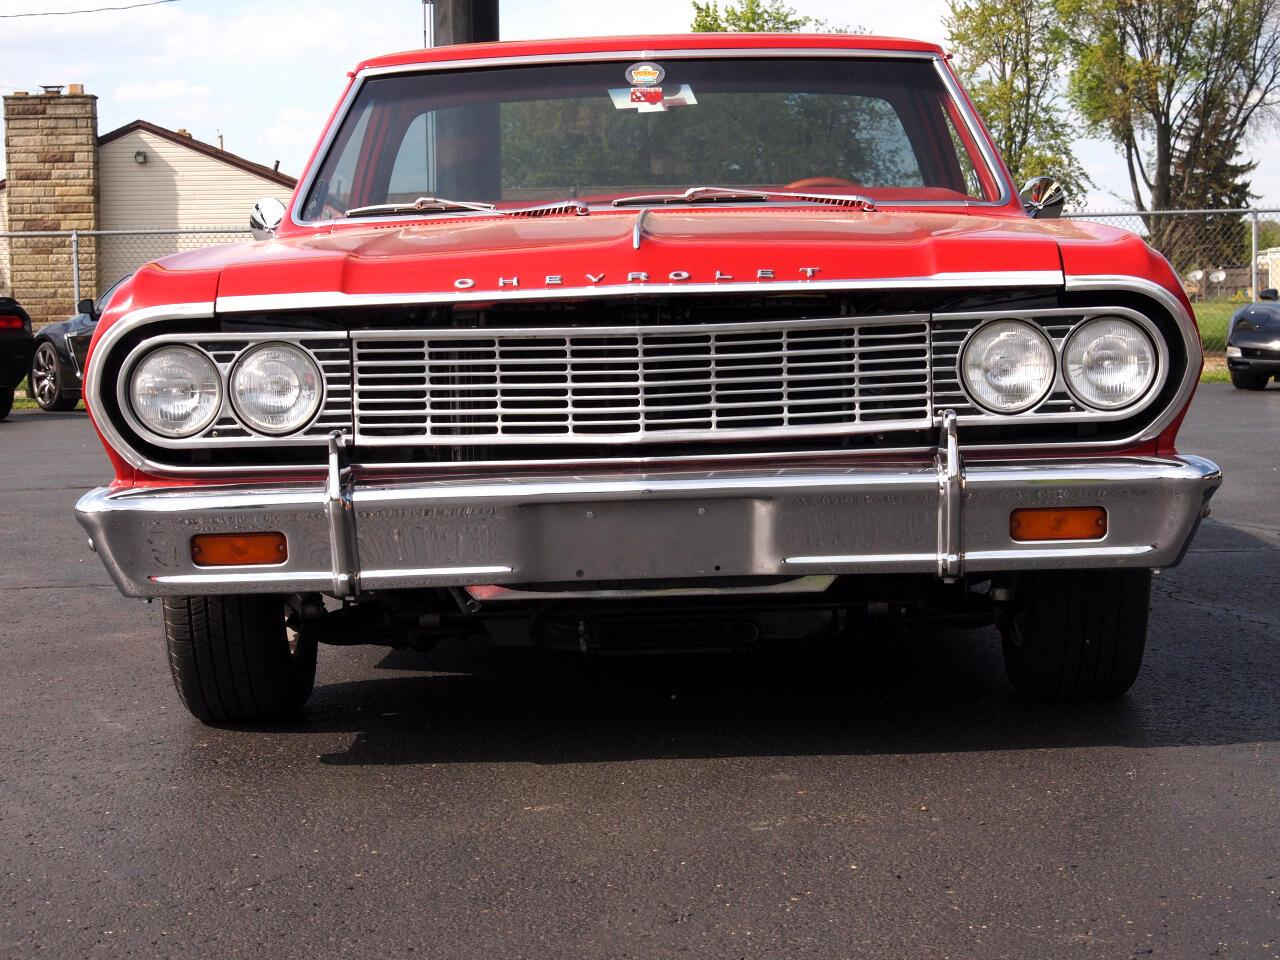 1964 Chevrolet El Camino (CC-1221652) for sale in North Canton, Ohio